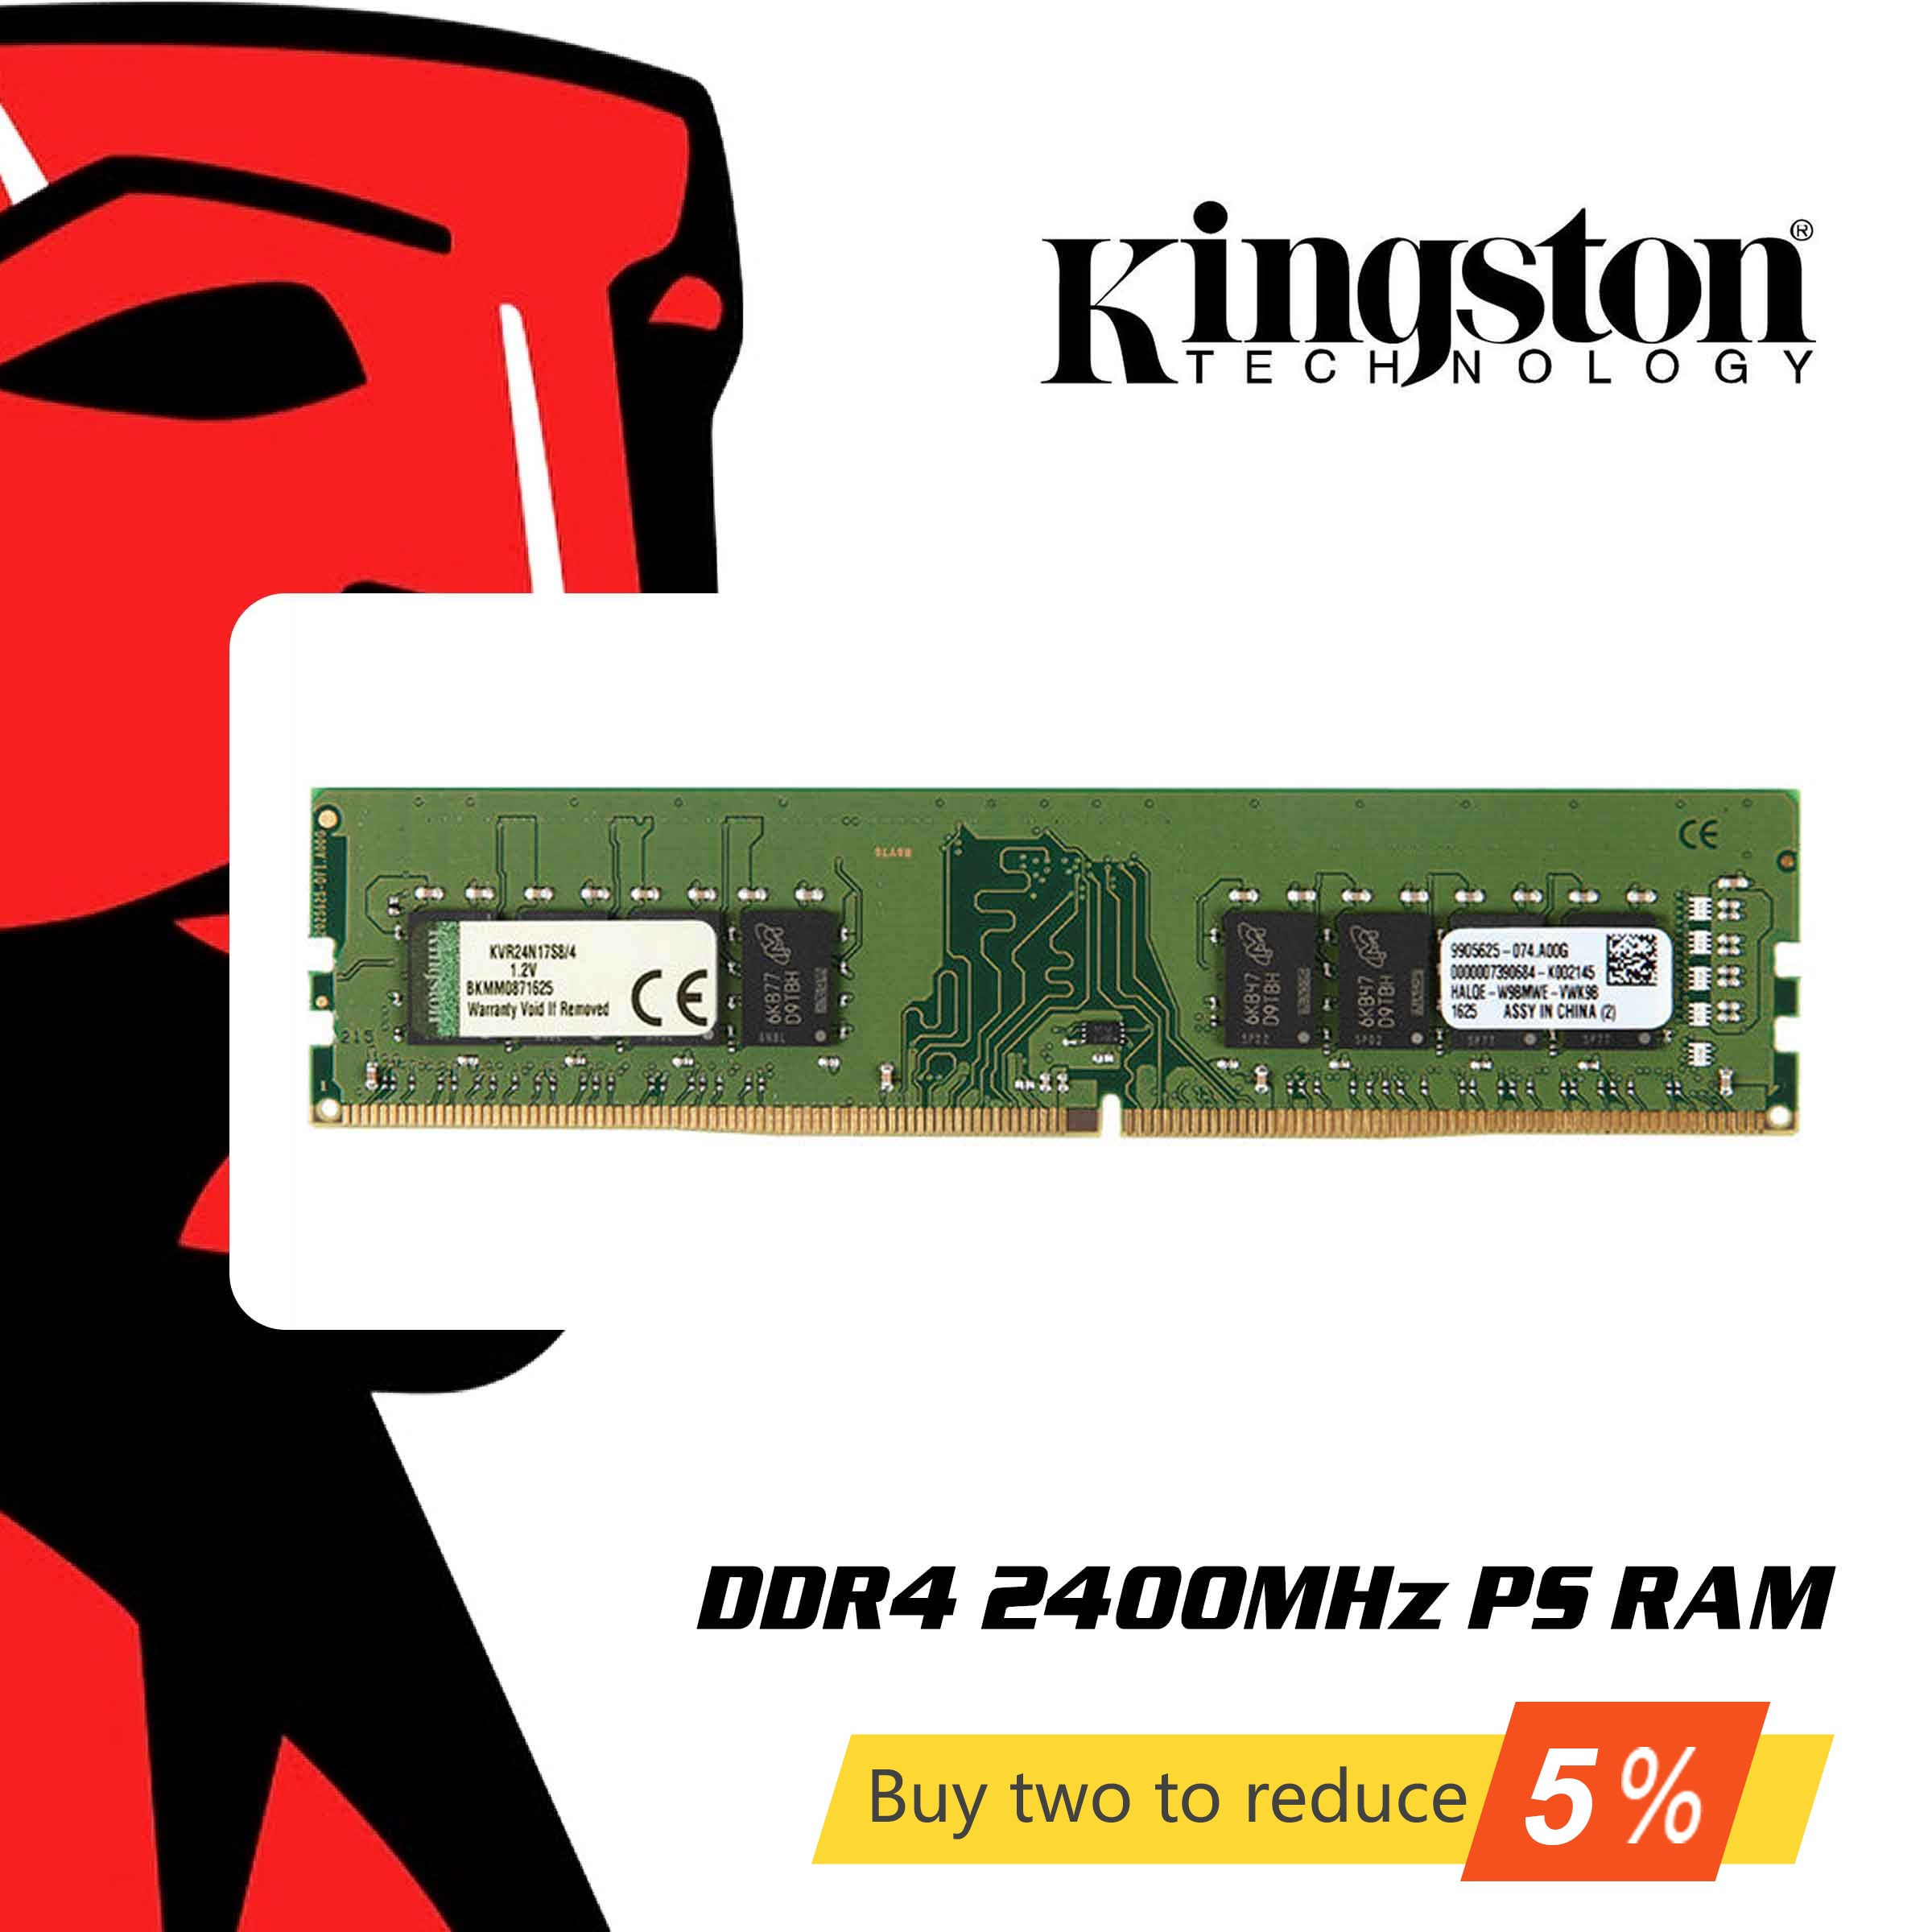 Original Kingston <font><b>DDR4</b></font> <font><b>RAM</b></font> Memory <font><b>8GB</b></font> 4GB 16GB <font><b>2400Mhz</b></font> Memoria DDR 4 8 16 Gigabytes Gigs Sticks for Desktop PC Notebook Laptop image